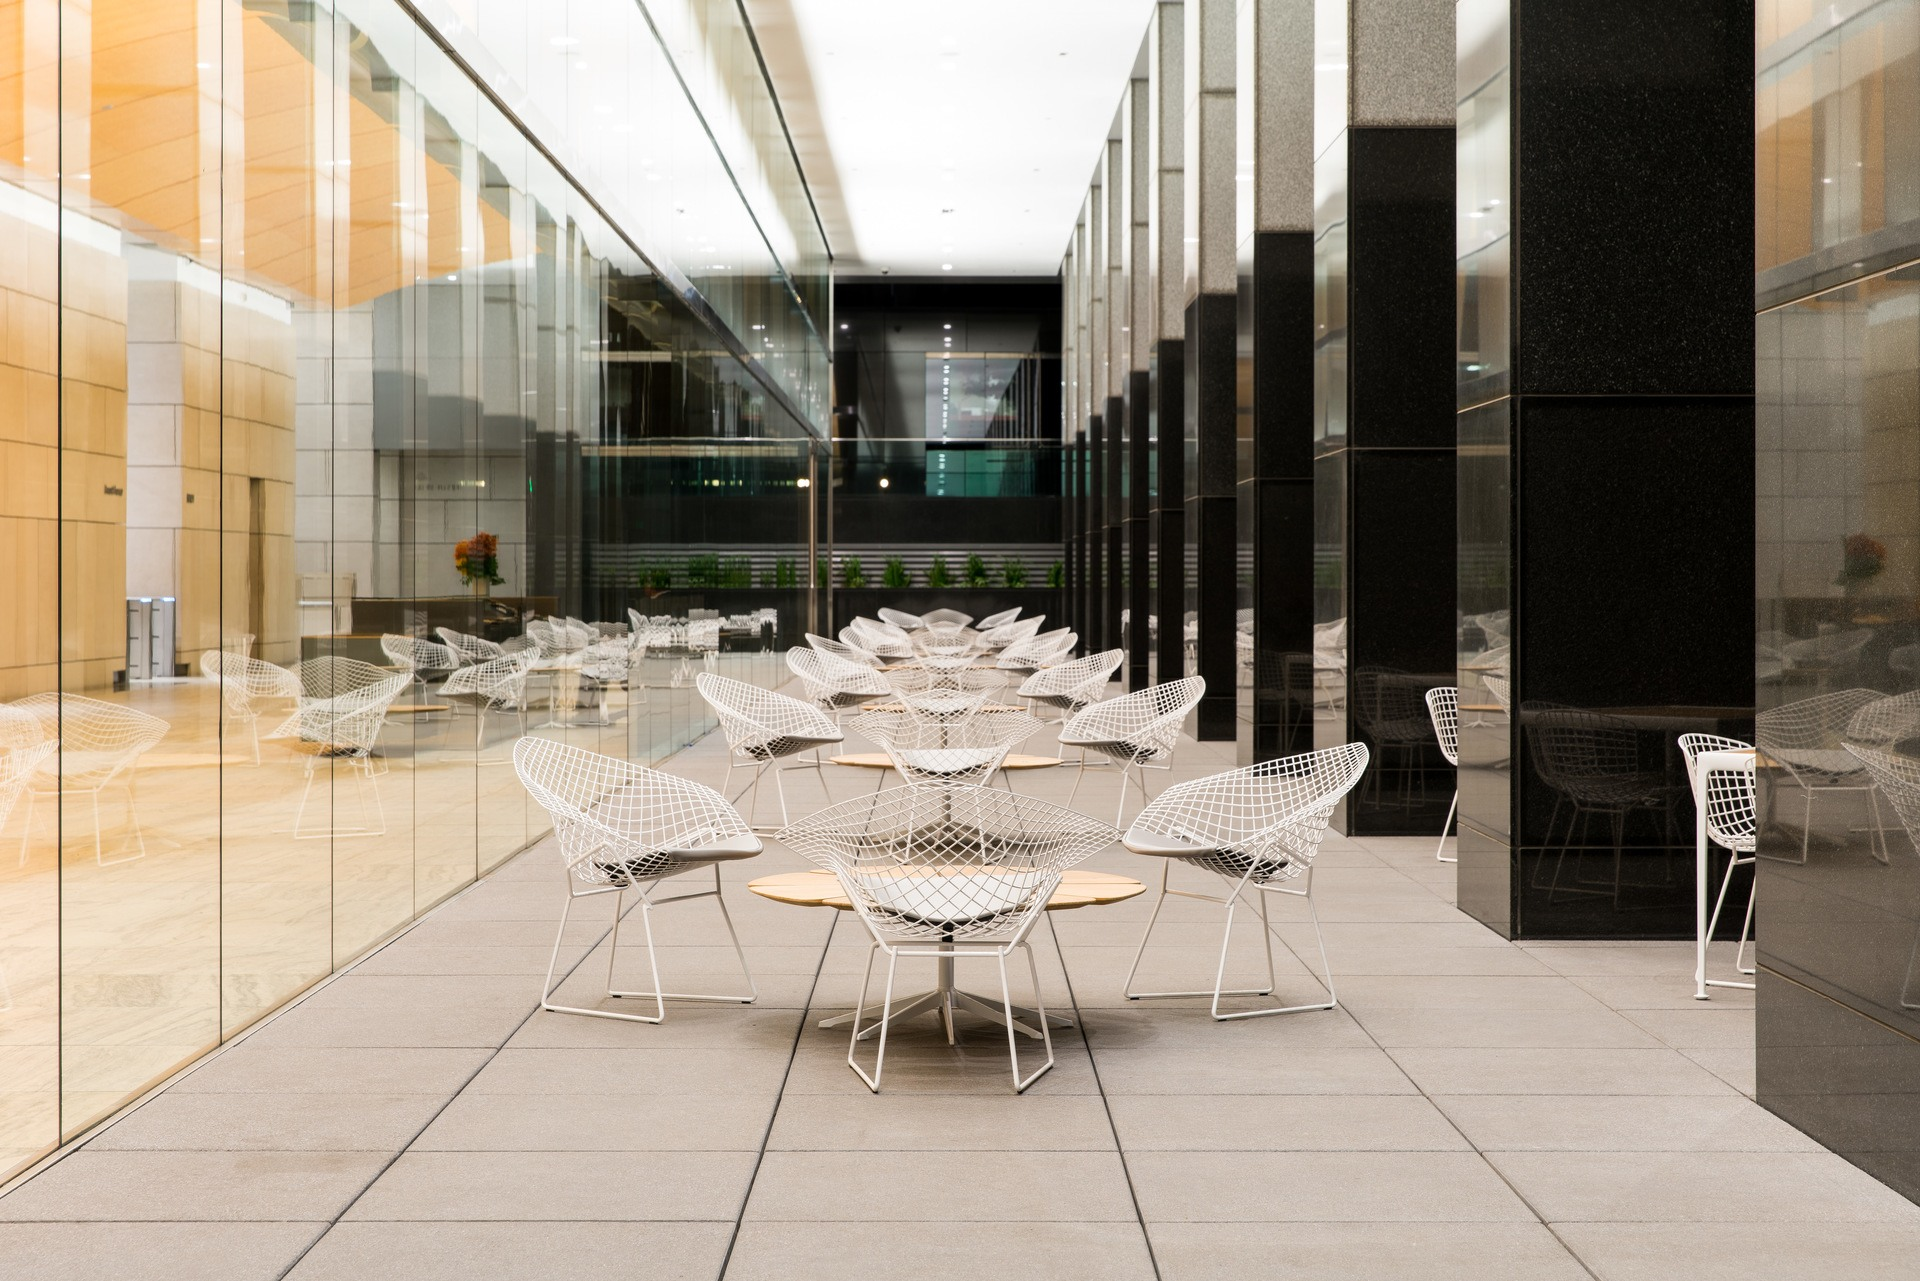 Outdoor seating area with white chairs and tables at night. The building entrance is to the left and has large, glass walls.